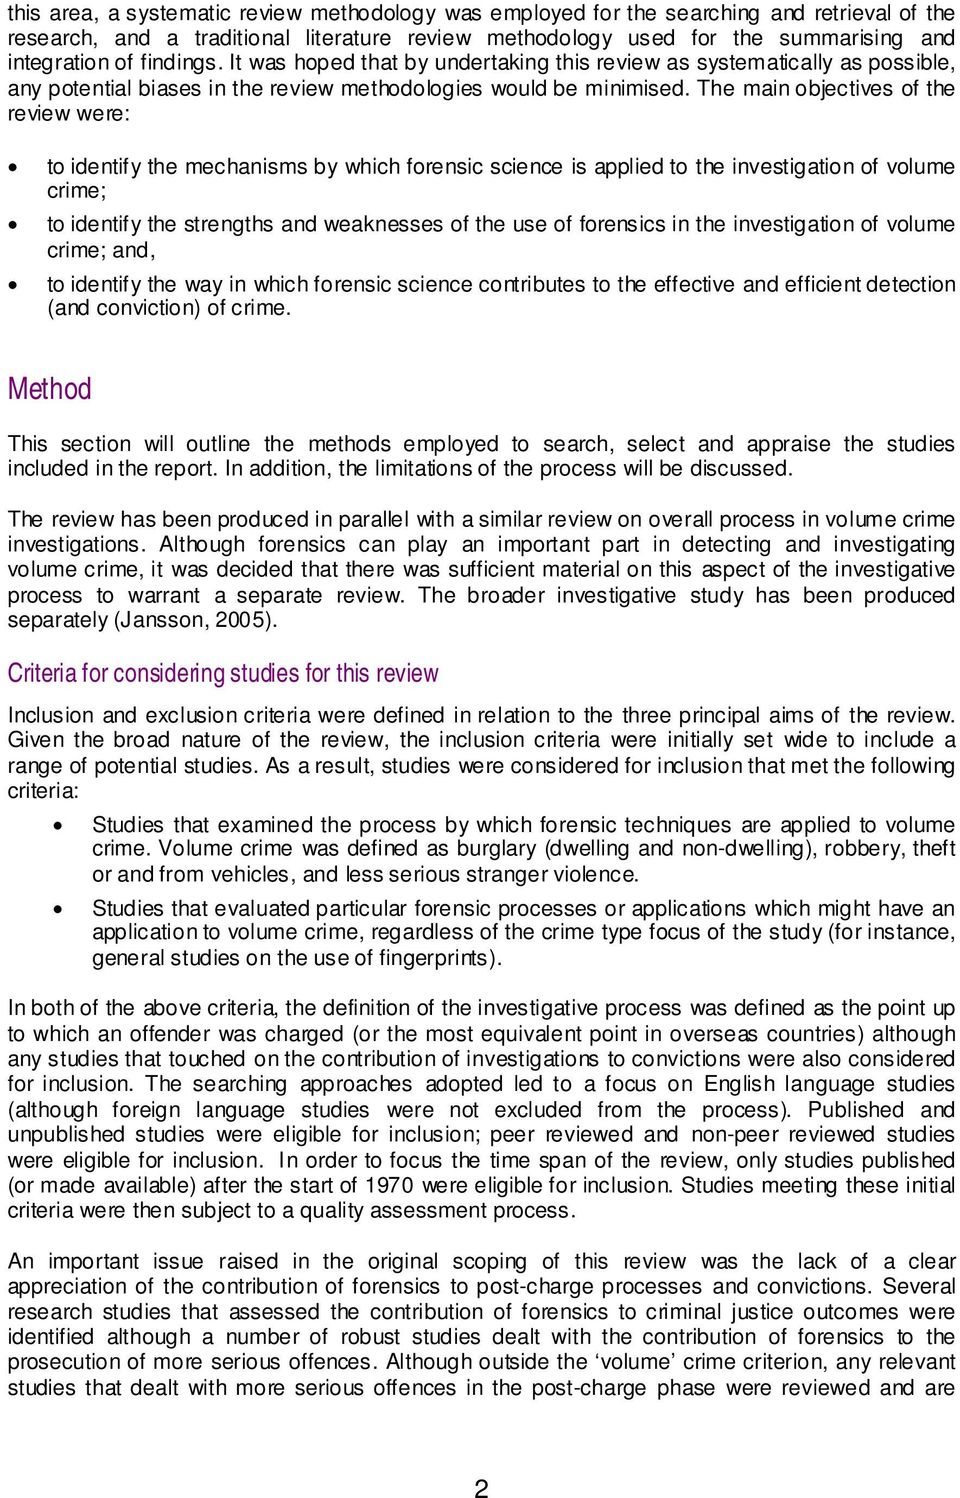 importance of forensic science in criminal investigation pdf